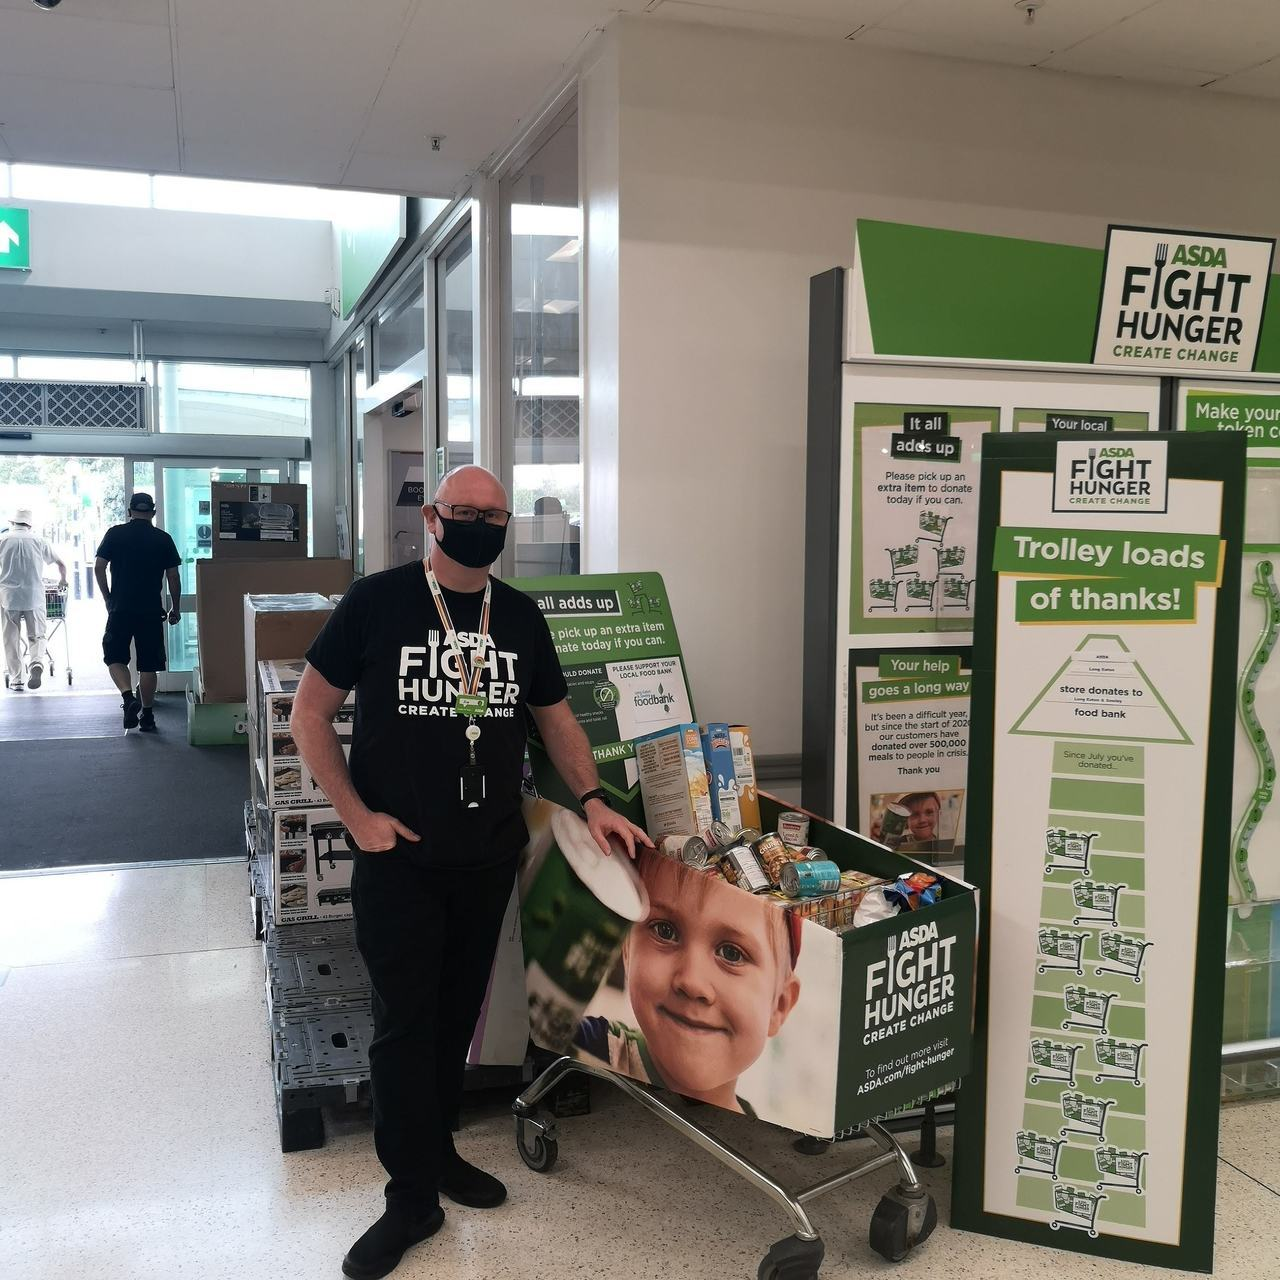 Fight Hunger Create Change support | Asda Long Eaton